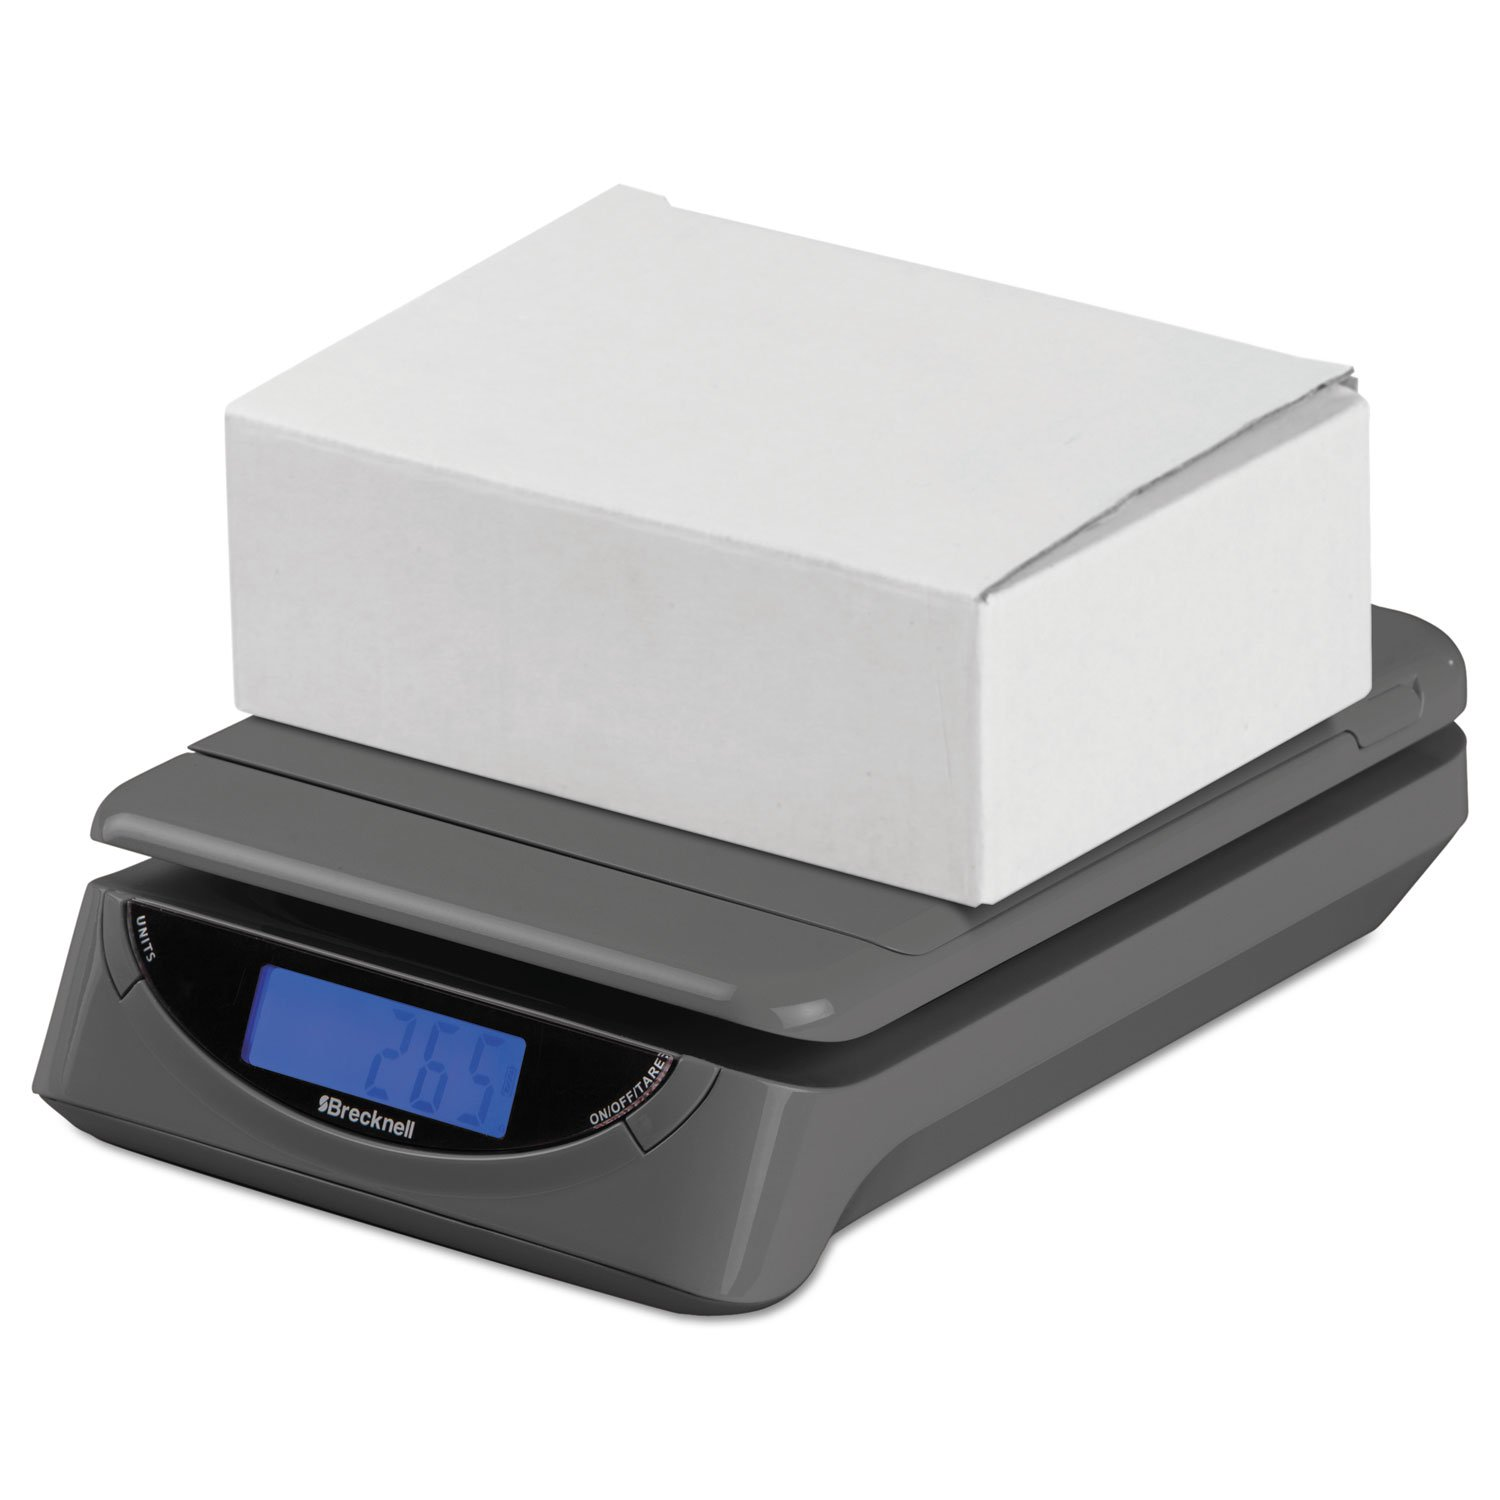 Cheap 500 Pound Scale, find 500 Pound Scale deals on line at Alibaba.com